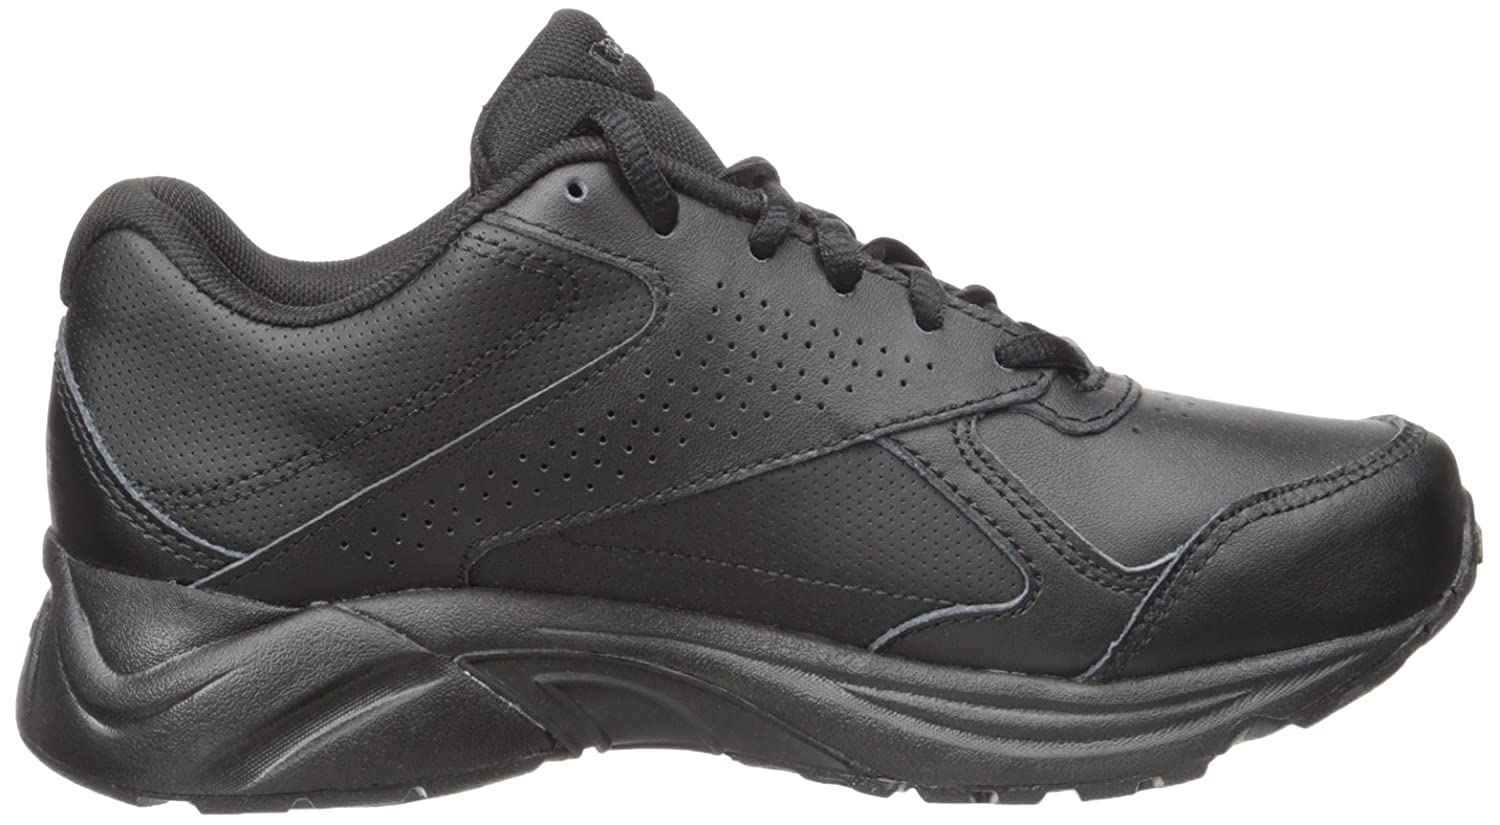 Reebok Women's Ultra V DMX Max Walking US|Black/Flat Shoe B01HH8NVP8 11 B(M) US|Black/Flat Walking Grey ed686b